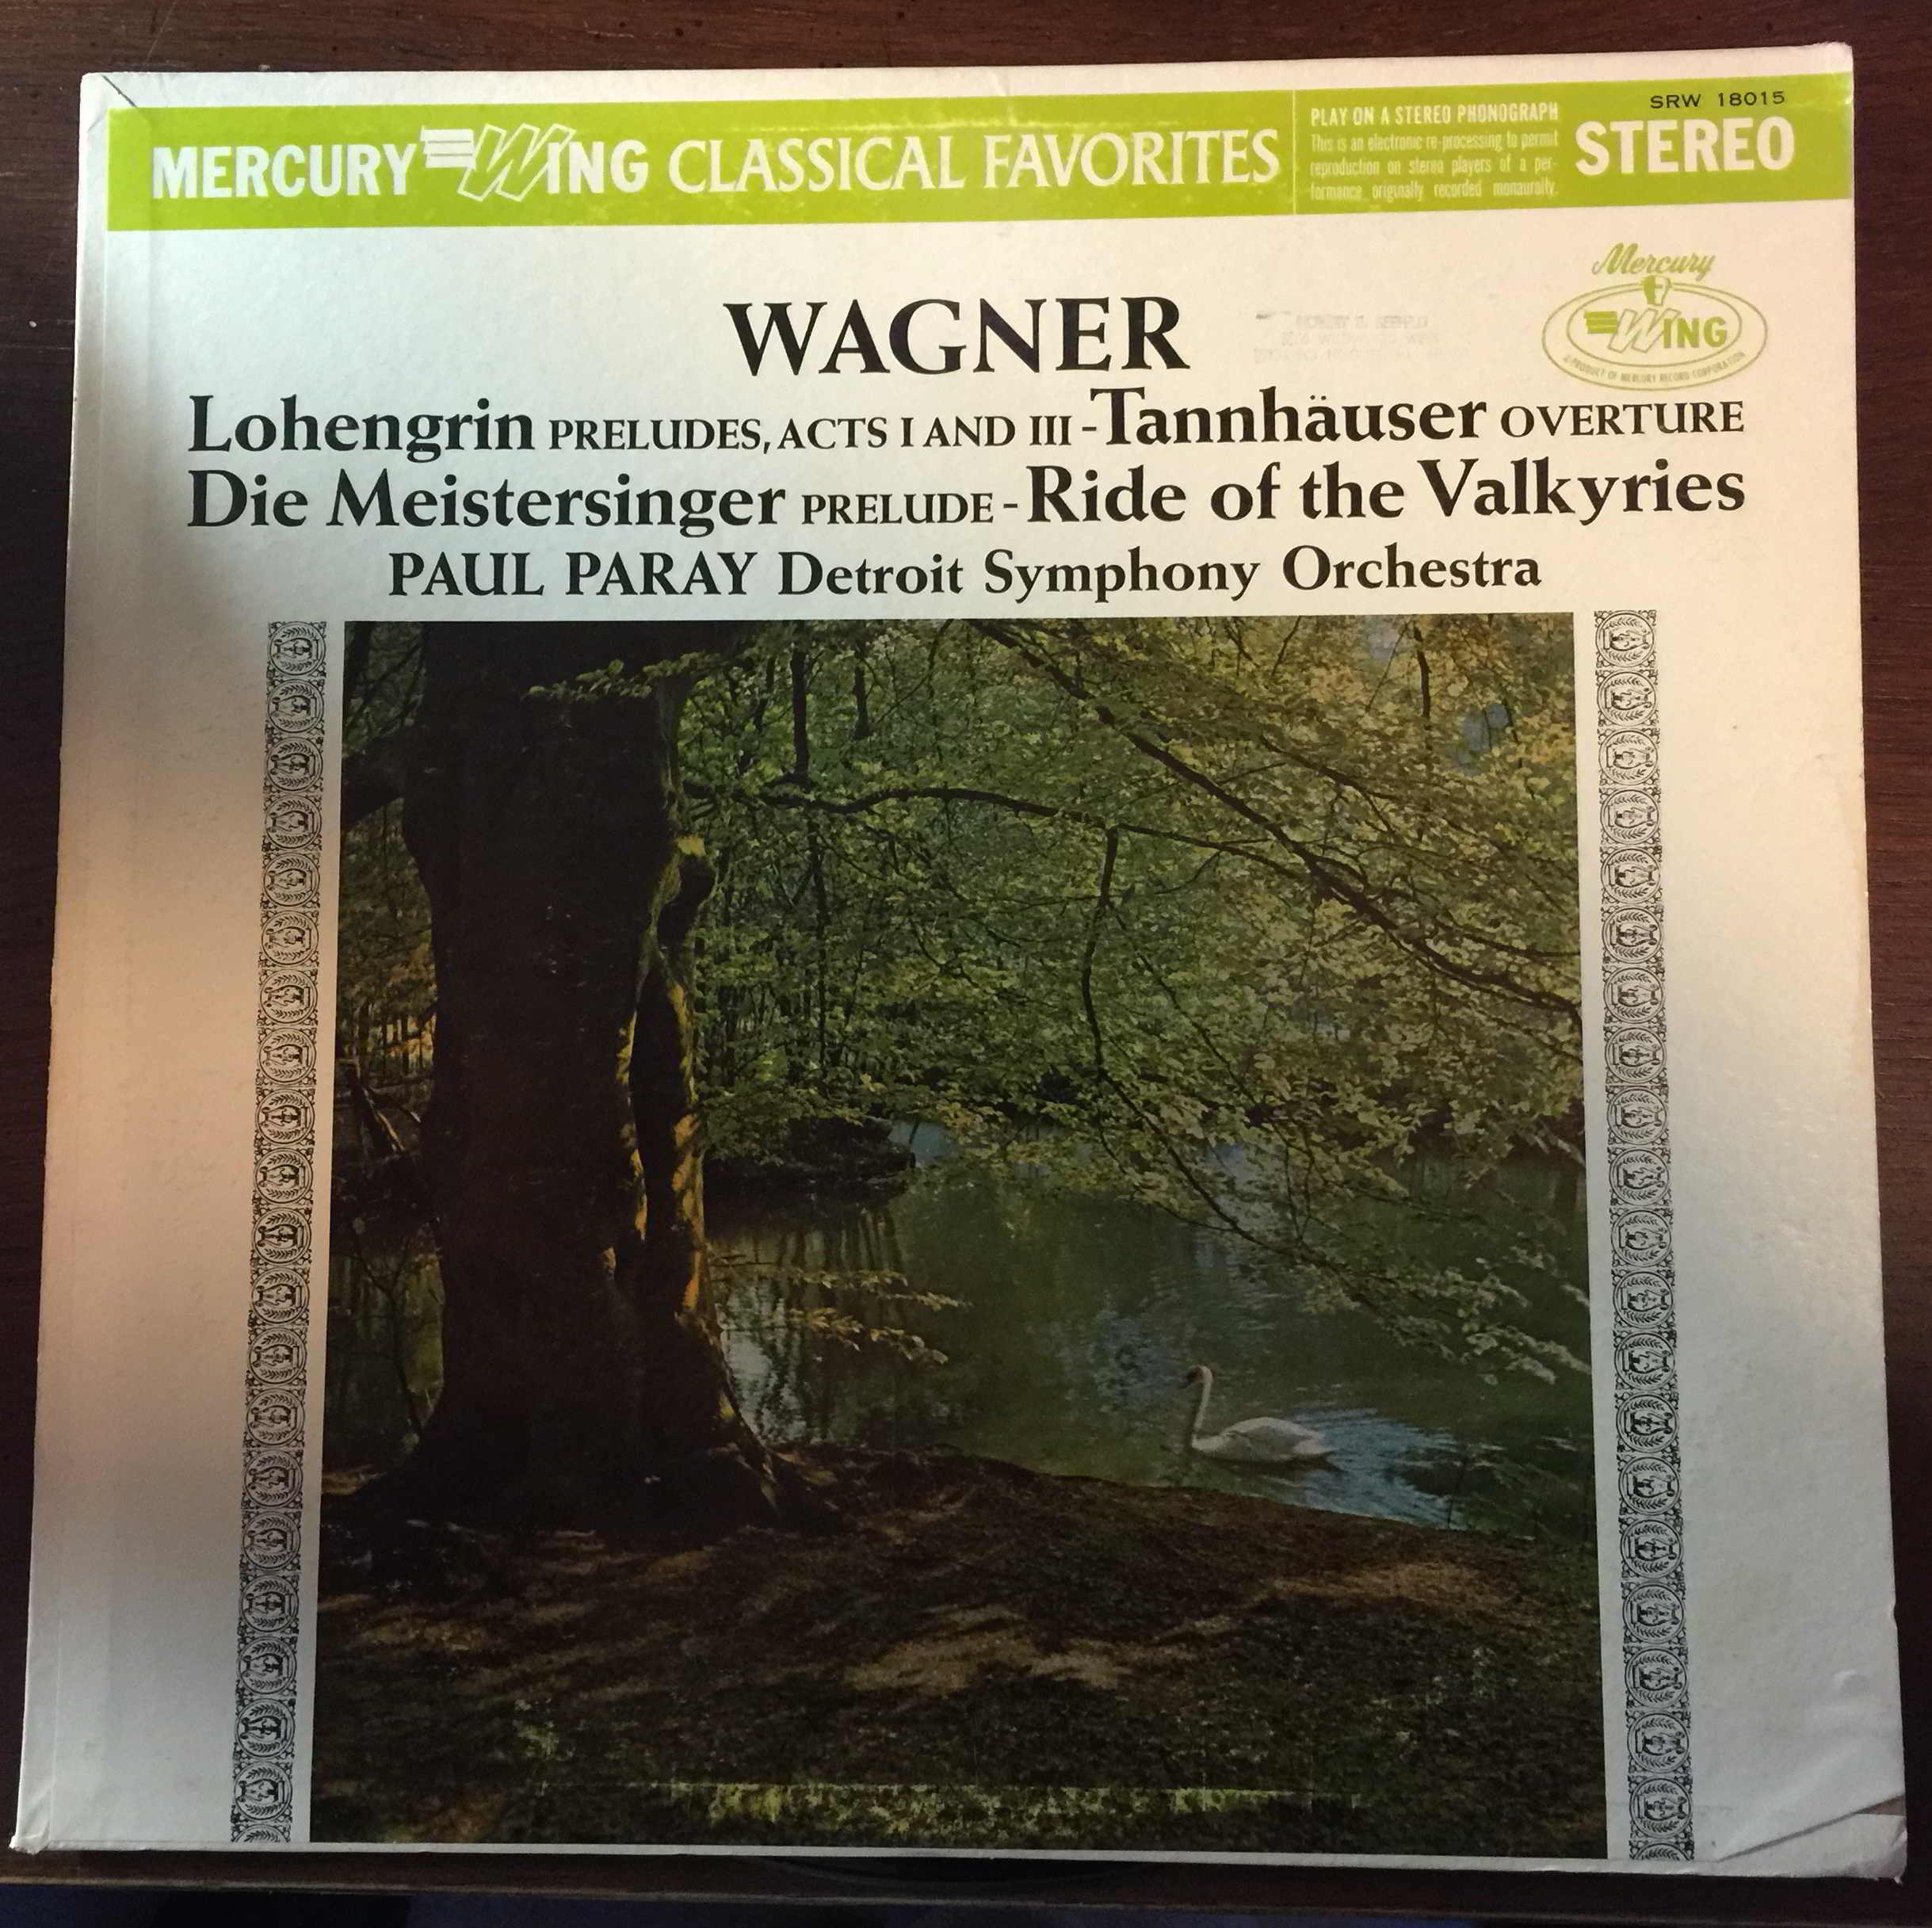 Wagner: Lohengrin (Preludes to Act 1 and Act 3) / Tannhauser (Overture) / Die Meistersinger (Prelude) / The Ride of the Valkyries